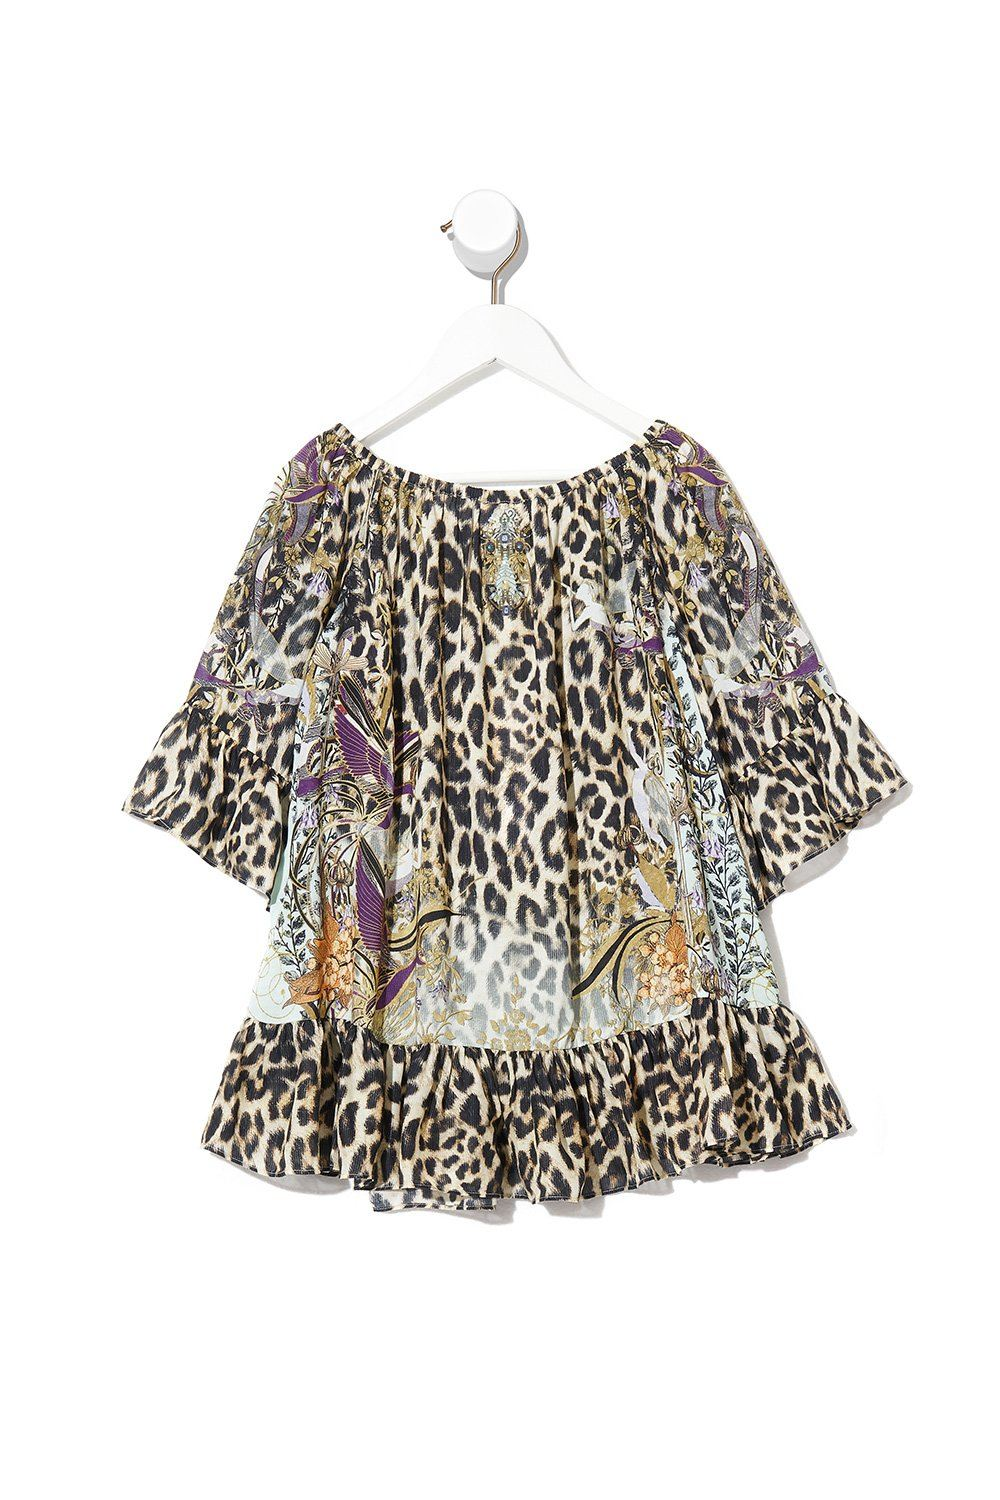 Nomadic Nymph Infants A-Line Frill Dress LITTLE GIRLS CLOTHING CAMILLA